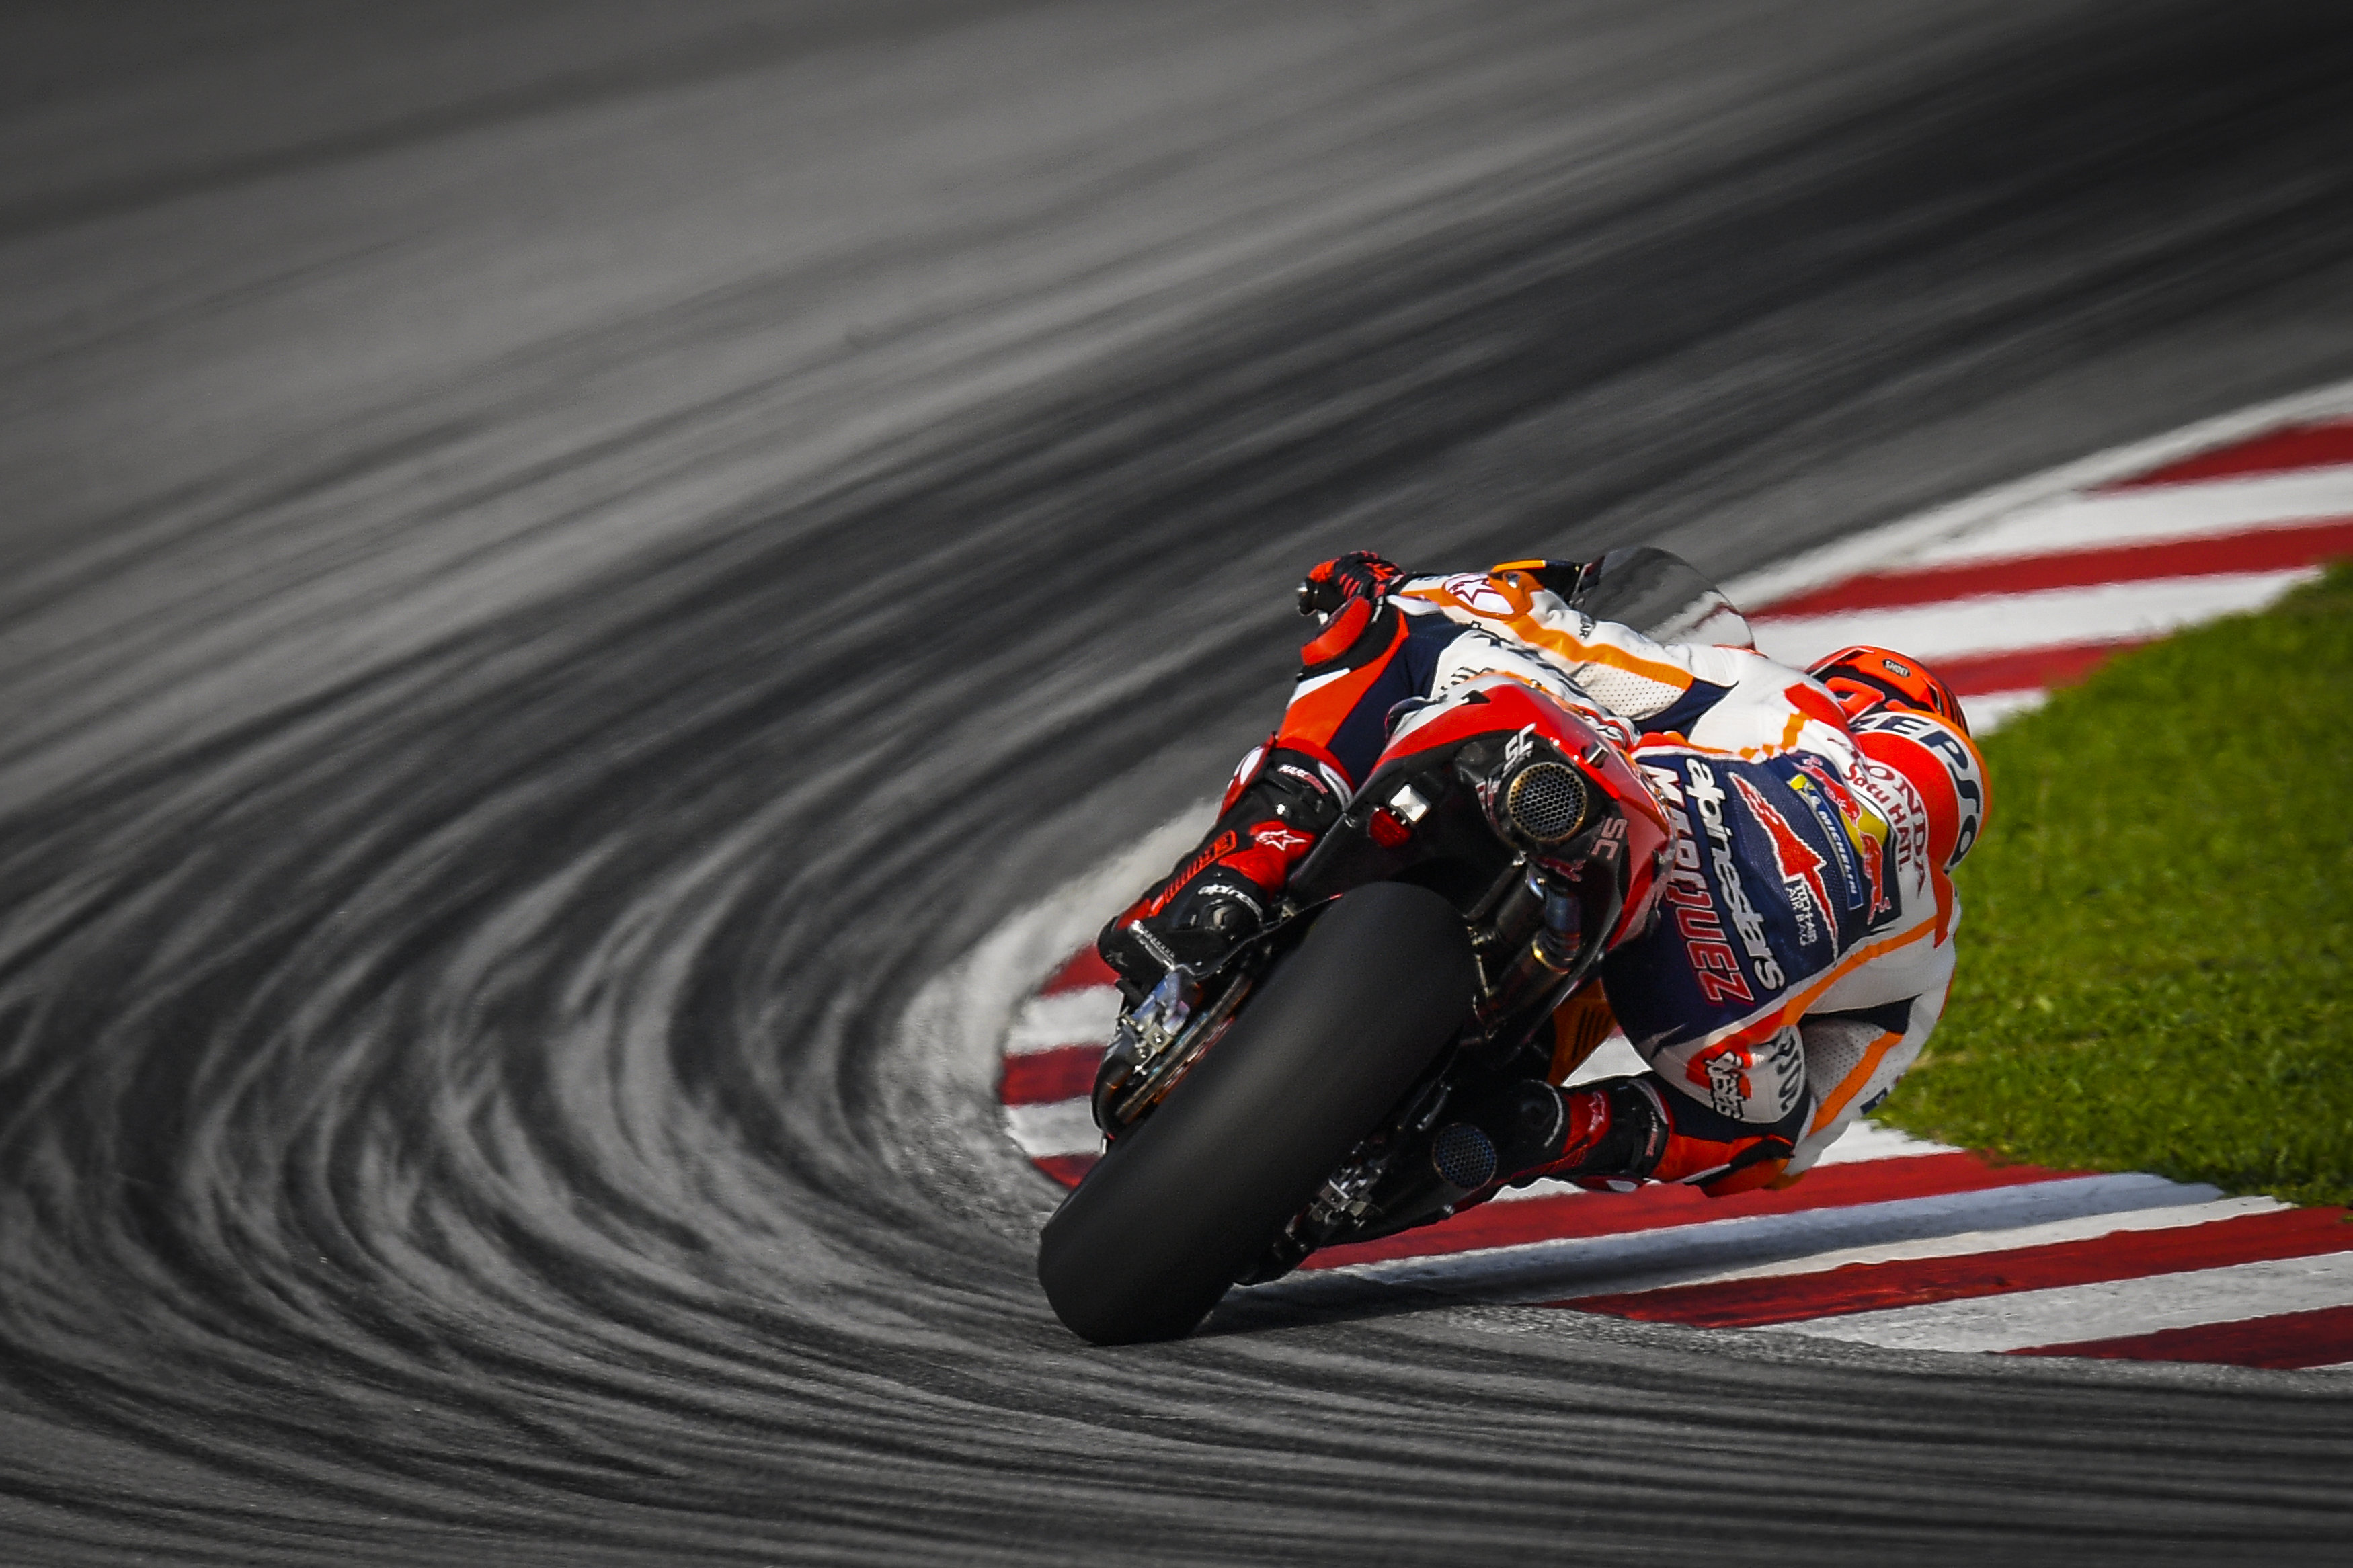 MotoGP world champion Marc Marquez (Pic: MotoGP)